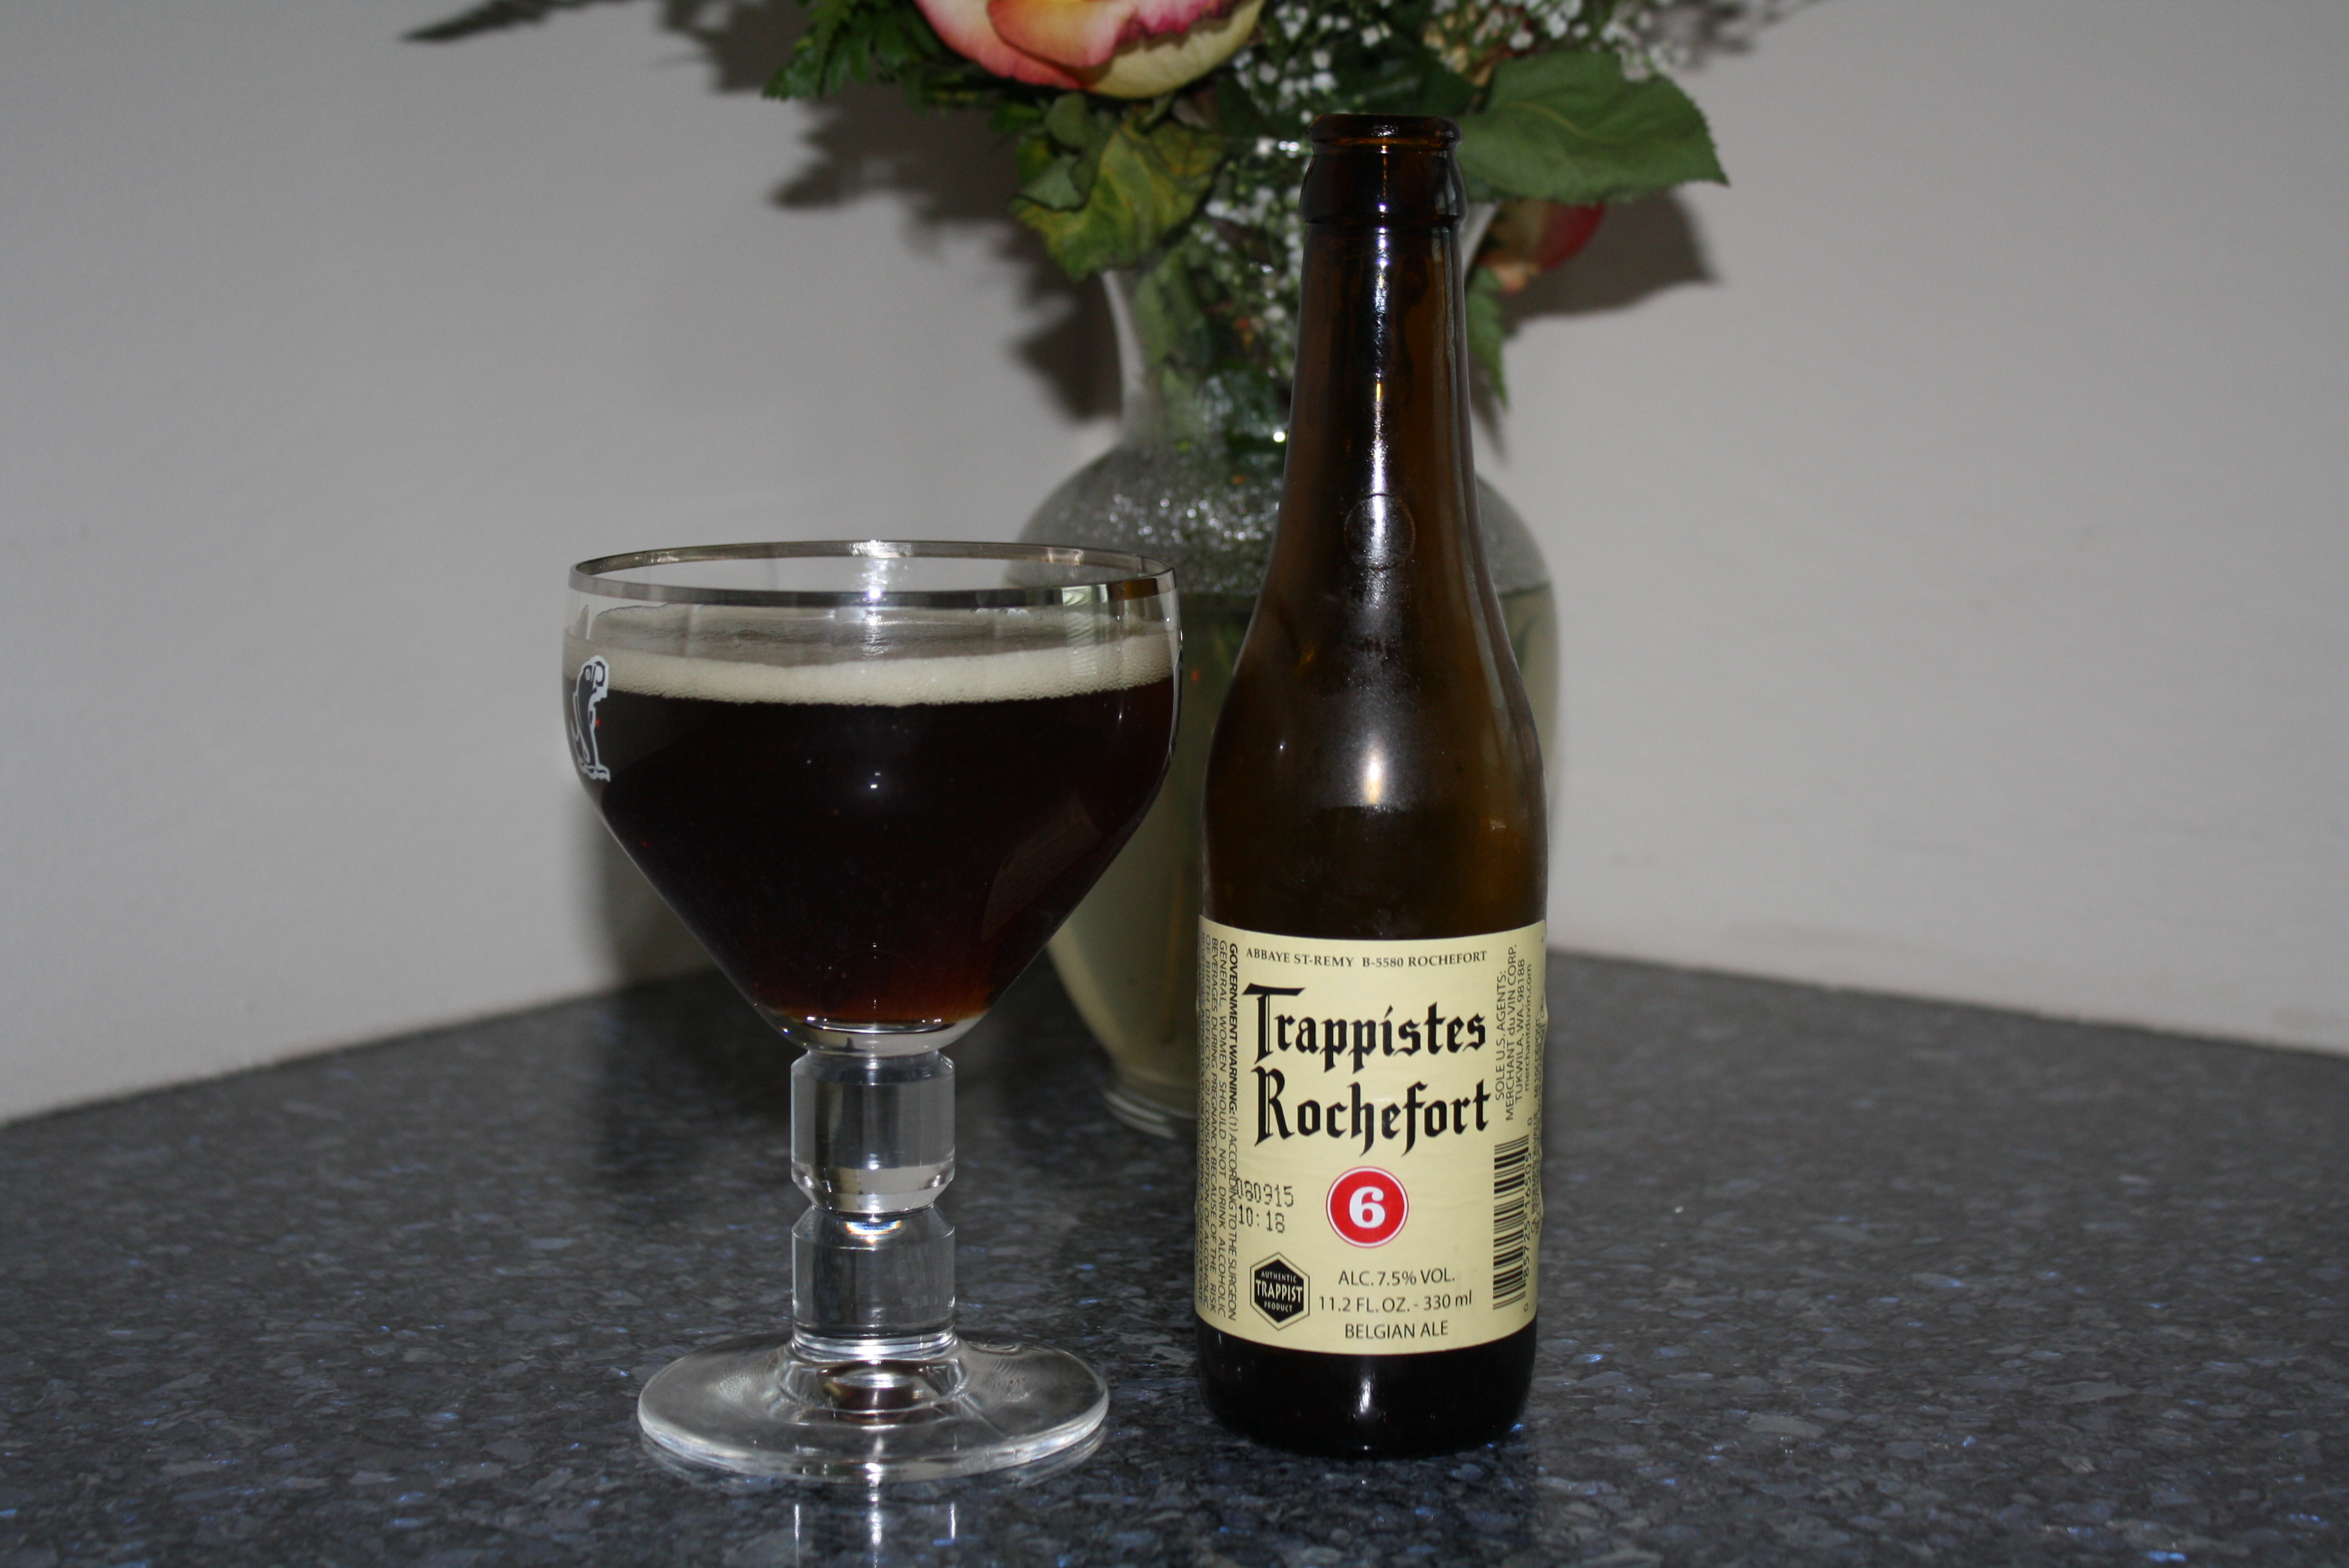 Beer Review – Trappistes Rochefort 6 – It's just the booze ...